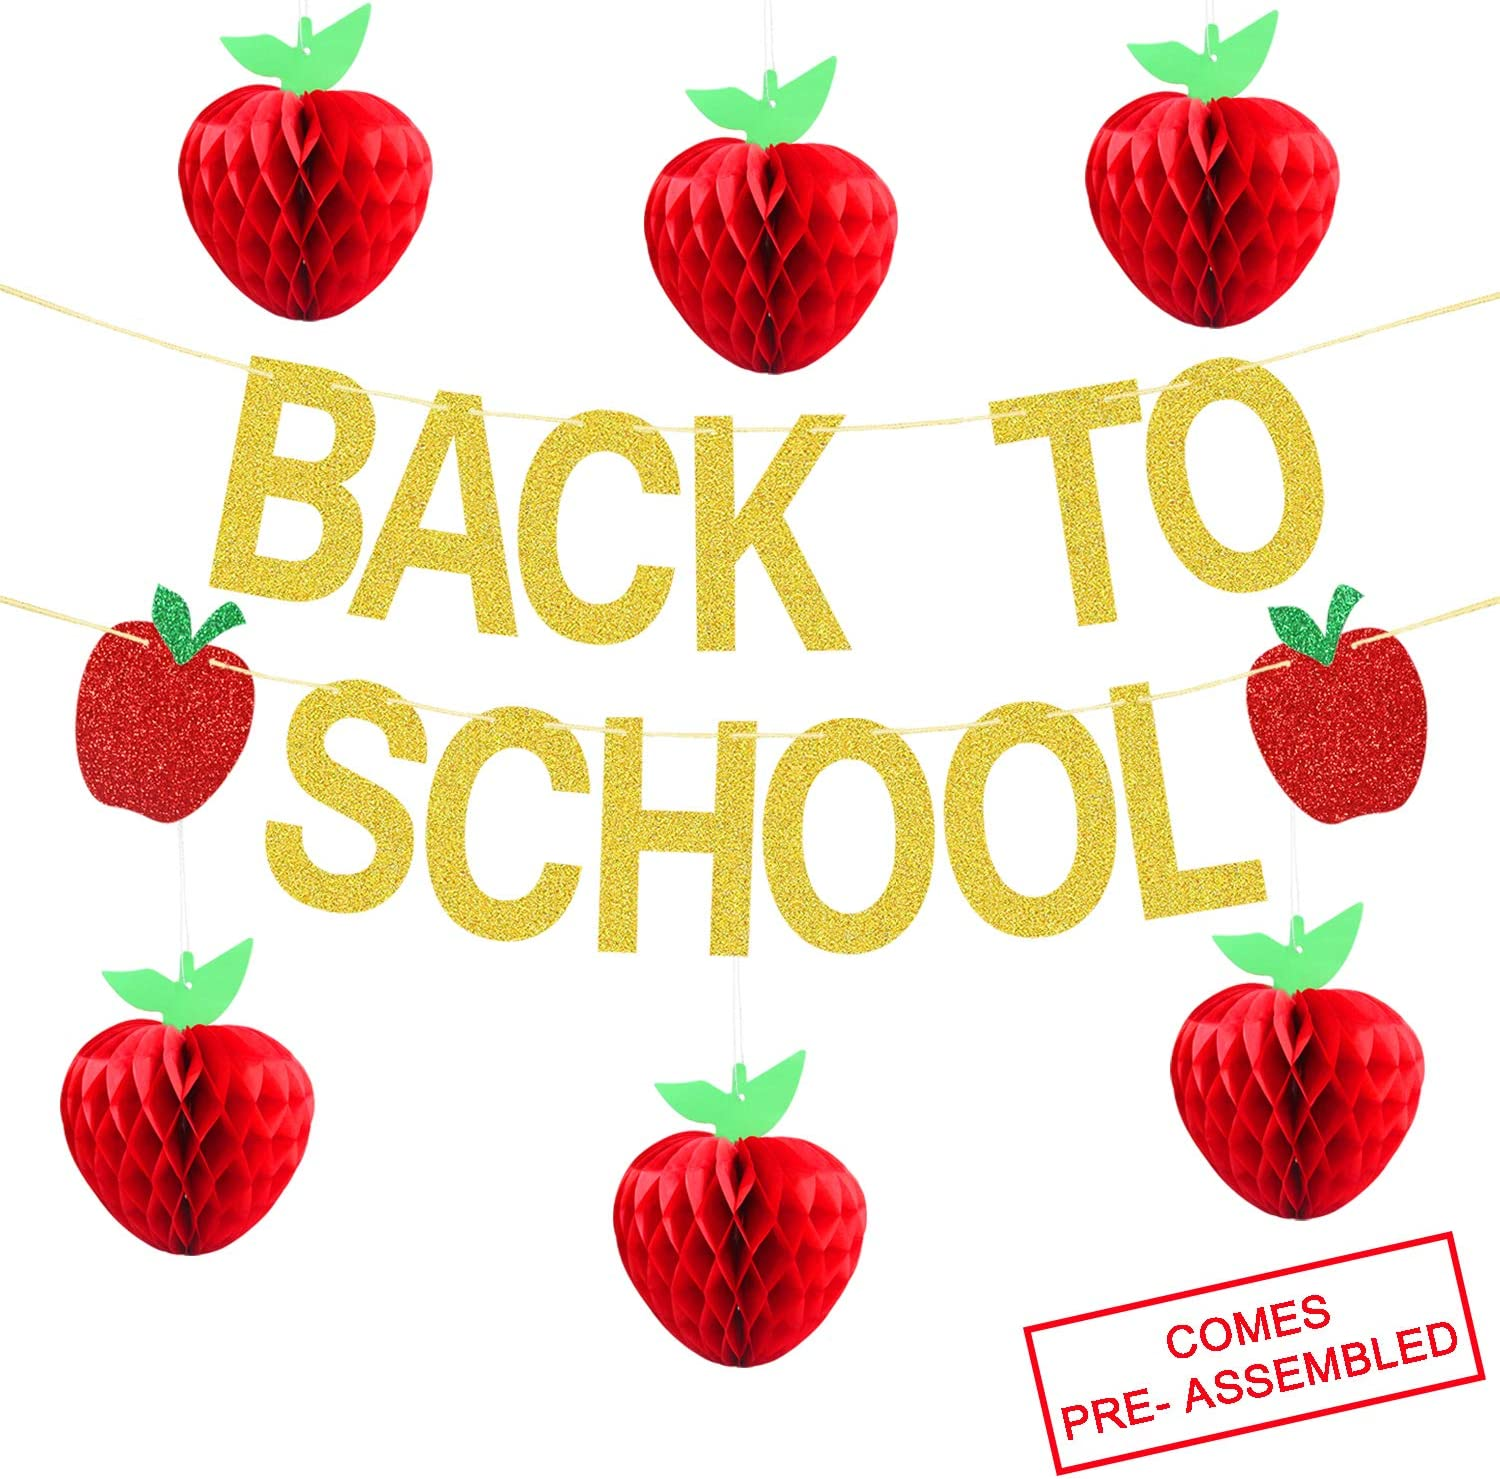 Back To School Banner Gold Glitter -Back to School Party Decorations Supplies -First Day of School Banner | Honeycomb Tissue Paper Apple Hanging Decorations -School Classroom Office Hanging Decor Sign